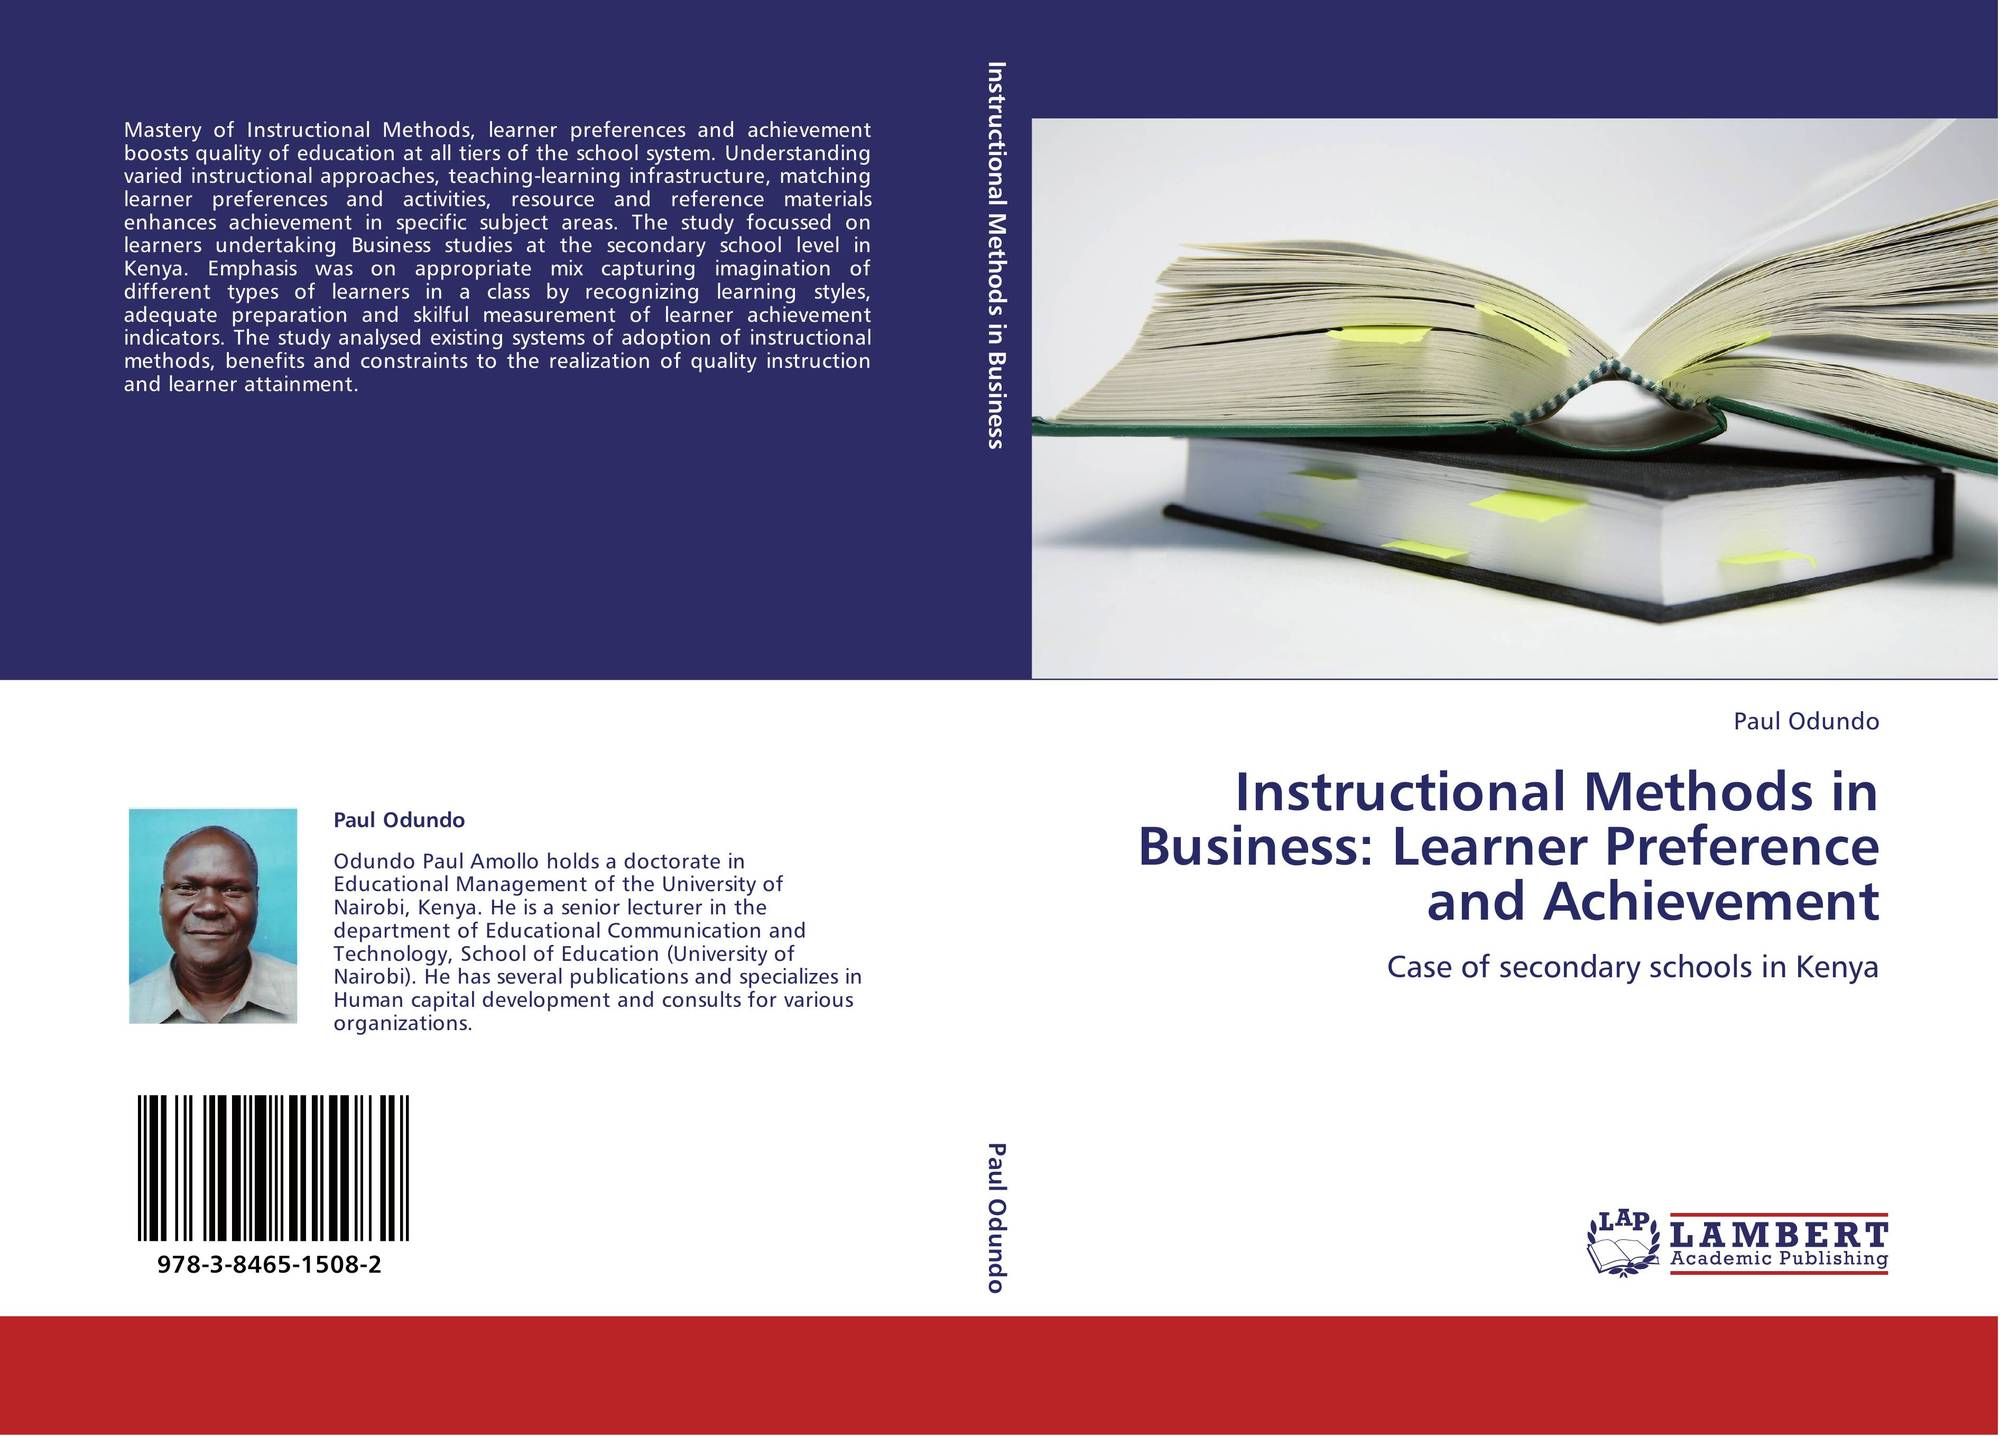 cognitive constraints in selected instructional approaches Behaviorism, cognitivism, constructivism: comparing critical features from an instructional design perspective performance improvement quarterly, 26 (2), 43-71 the need for a bridge between basic learning research and educational practice has long been discussed.